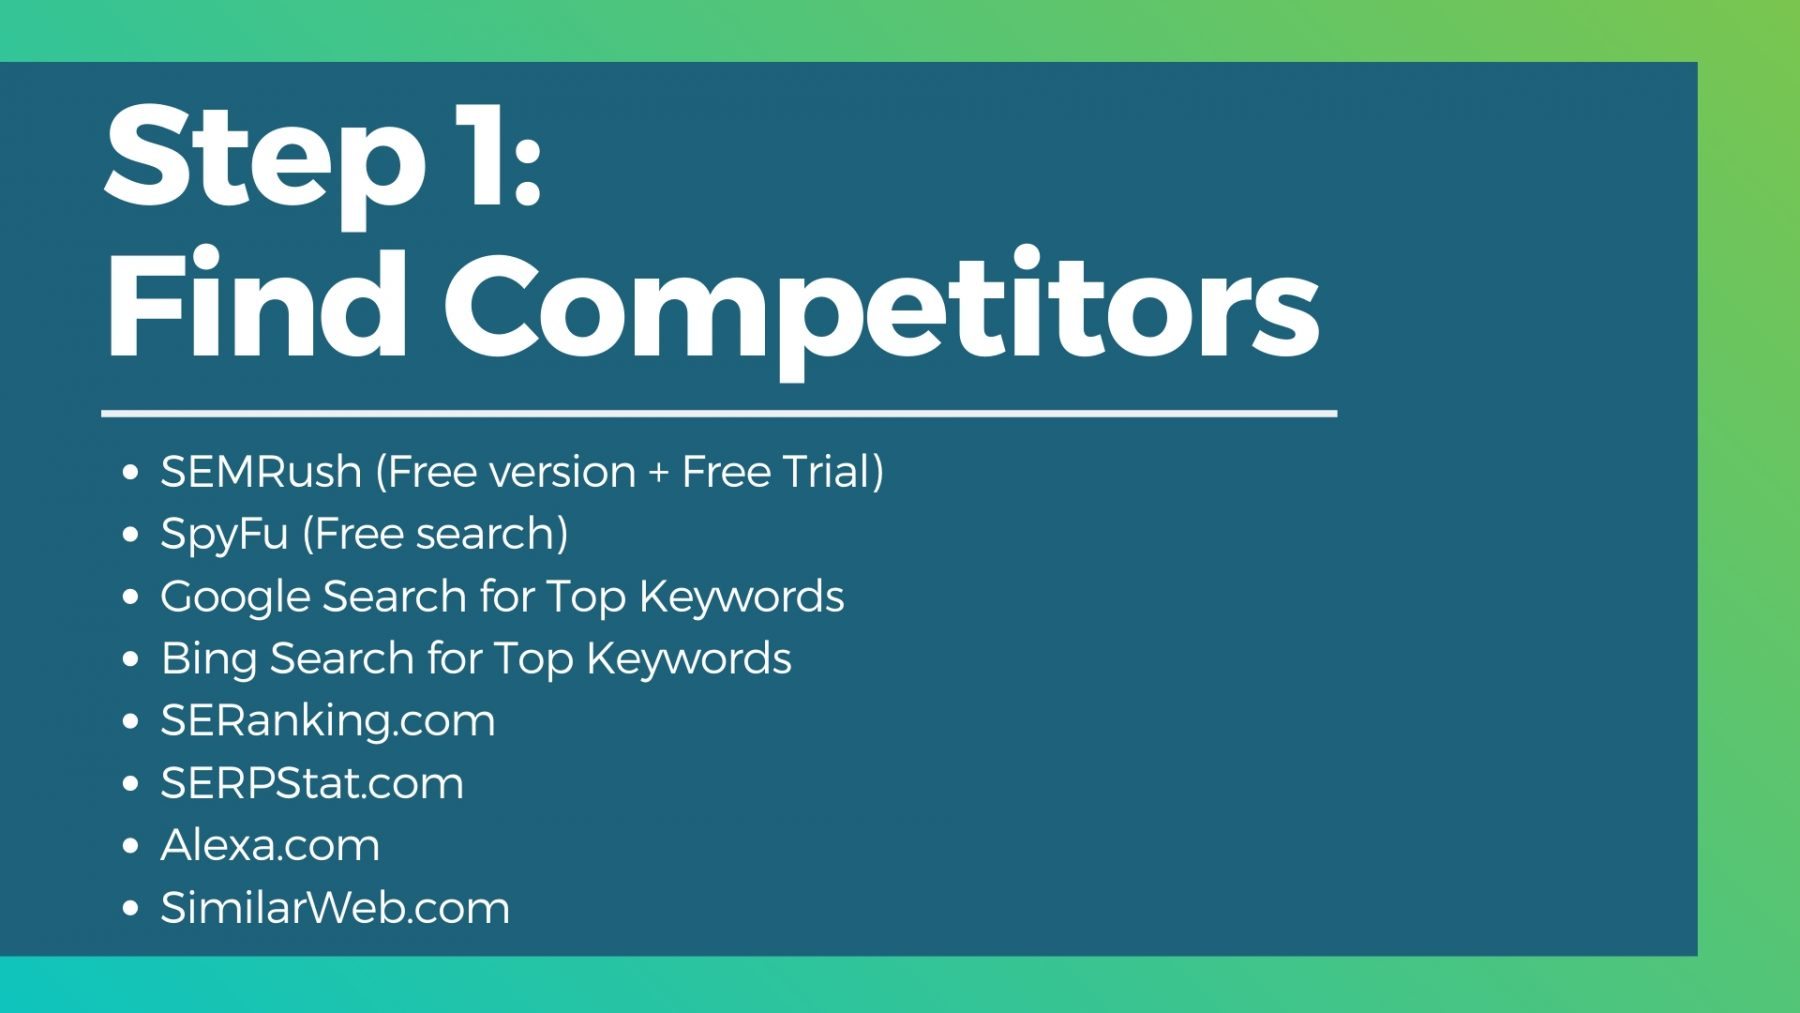 seo competitor tools free